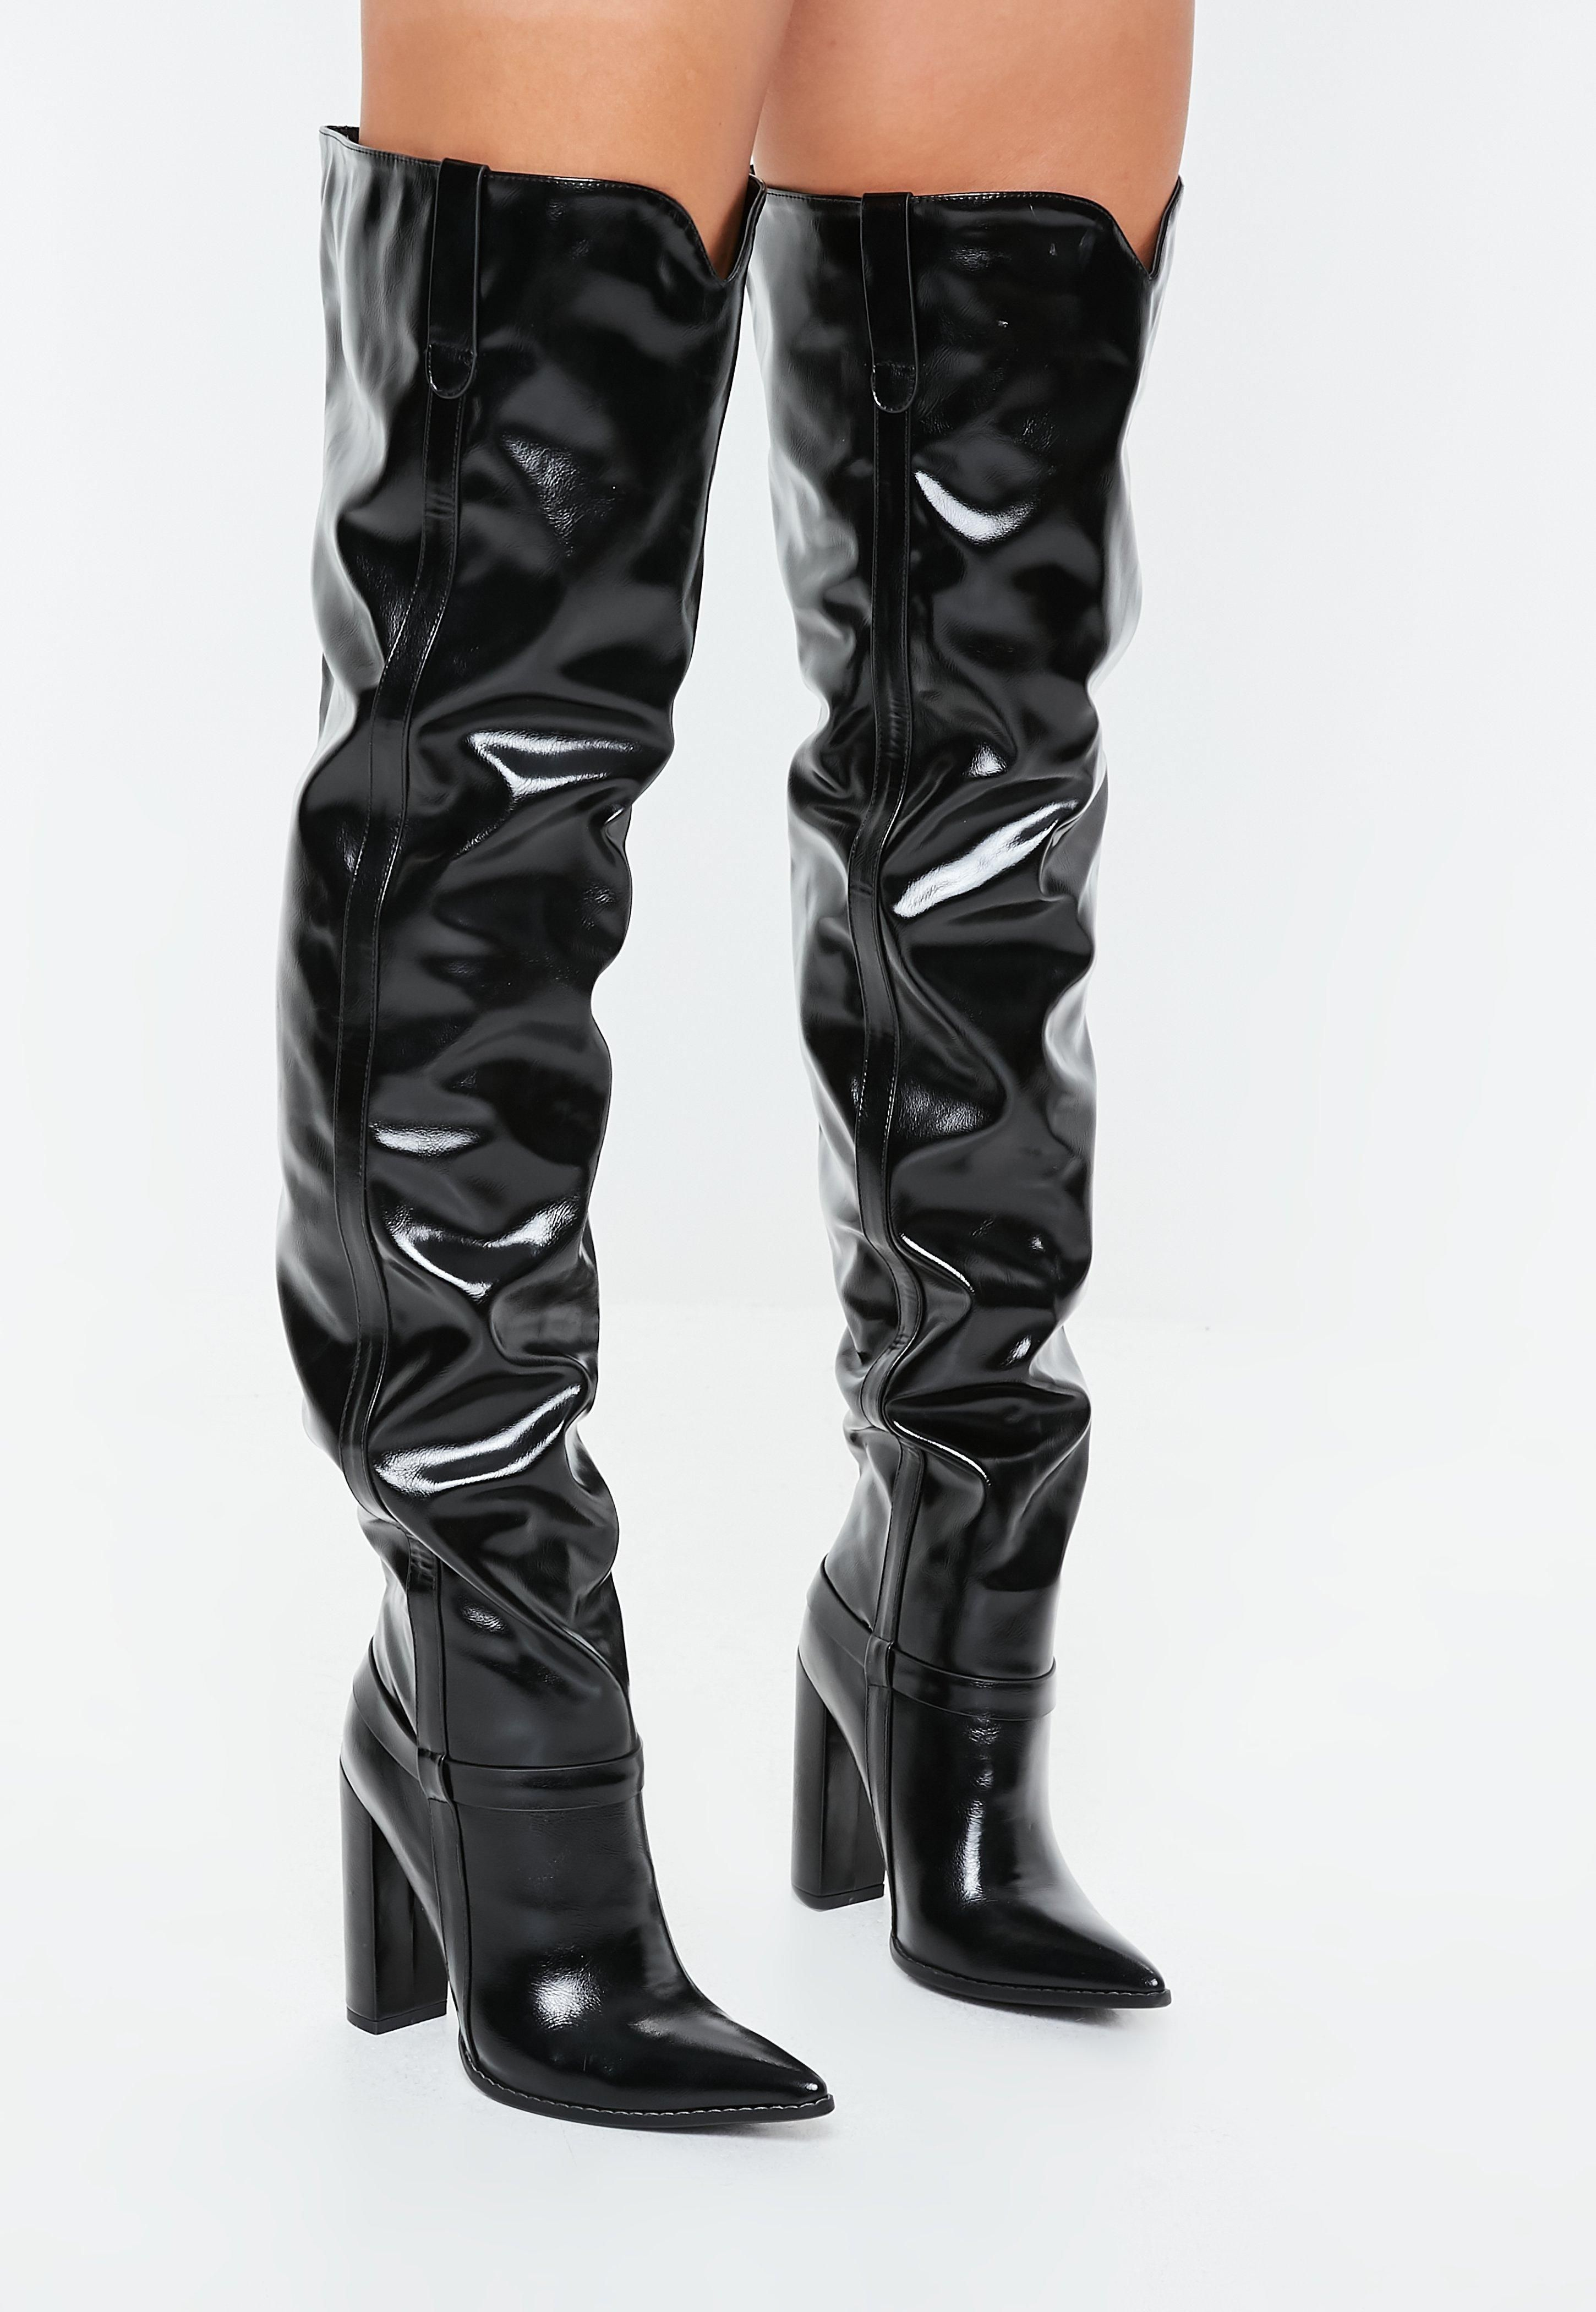 43248dcd1a1d black-block-heel-faux-leather-thigh-high-boots  shoes  pretty  instafashion   instatag  fashion  fashiondaily  fashionblog  fashiongram  styles   fashionpost ...